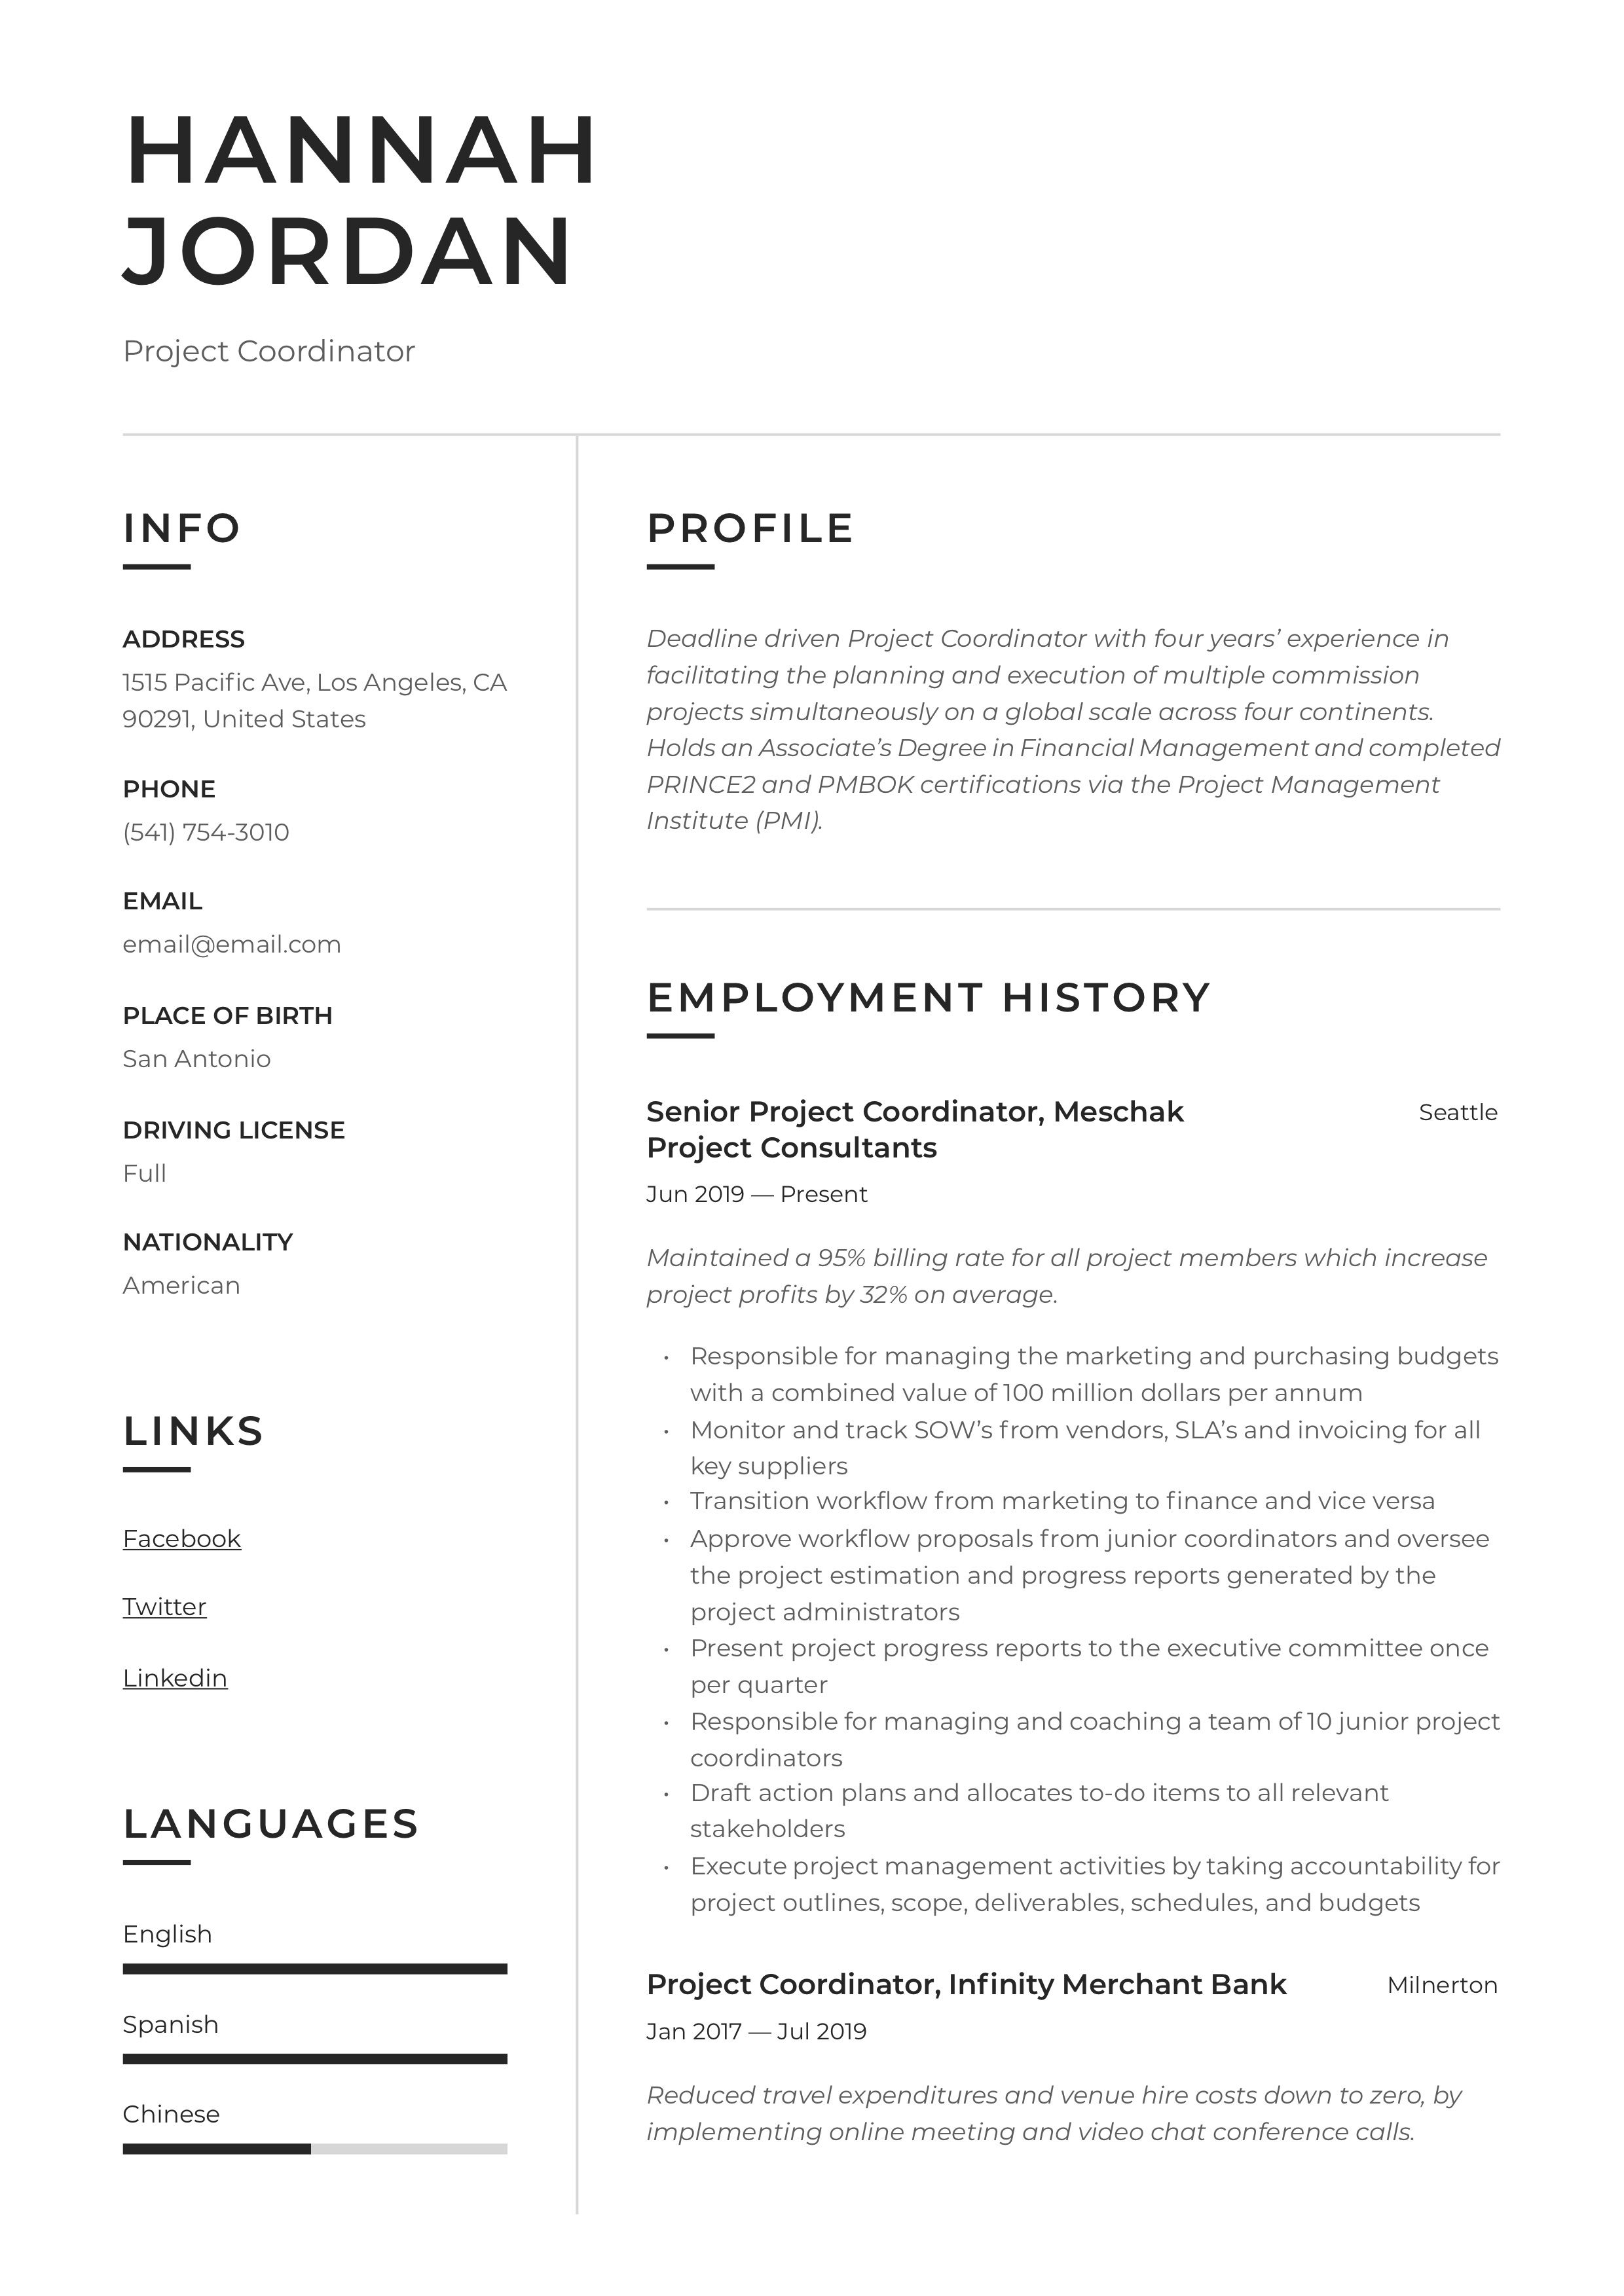 Project coordinator resume writing guide in 2020 with